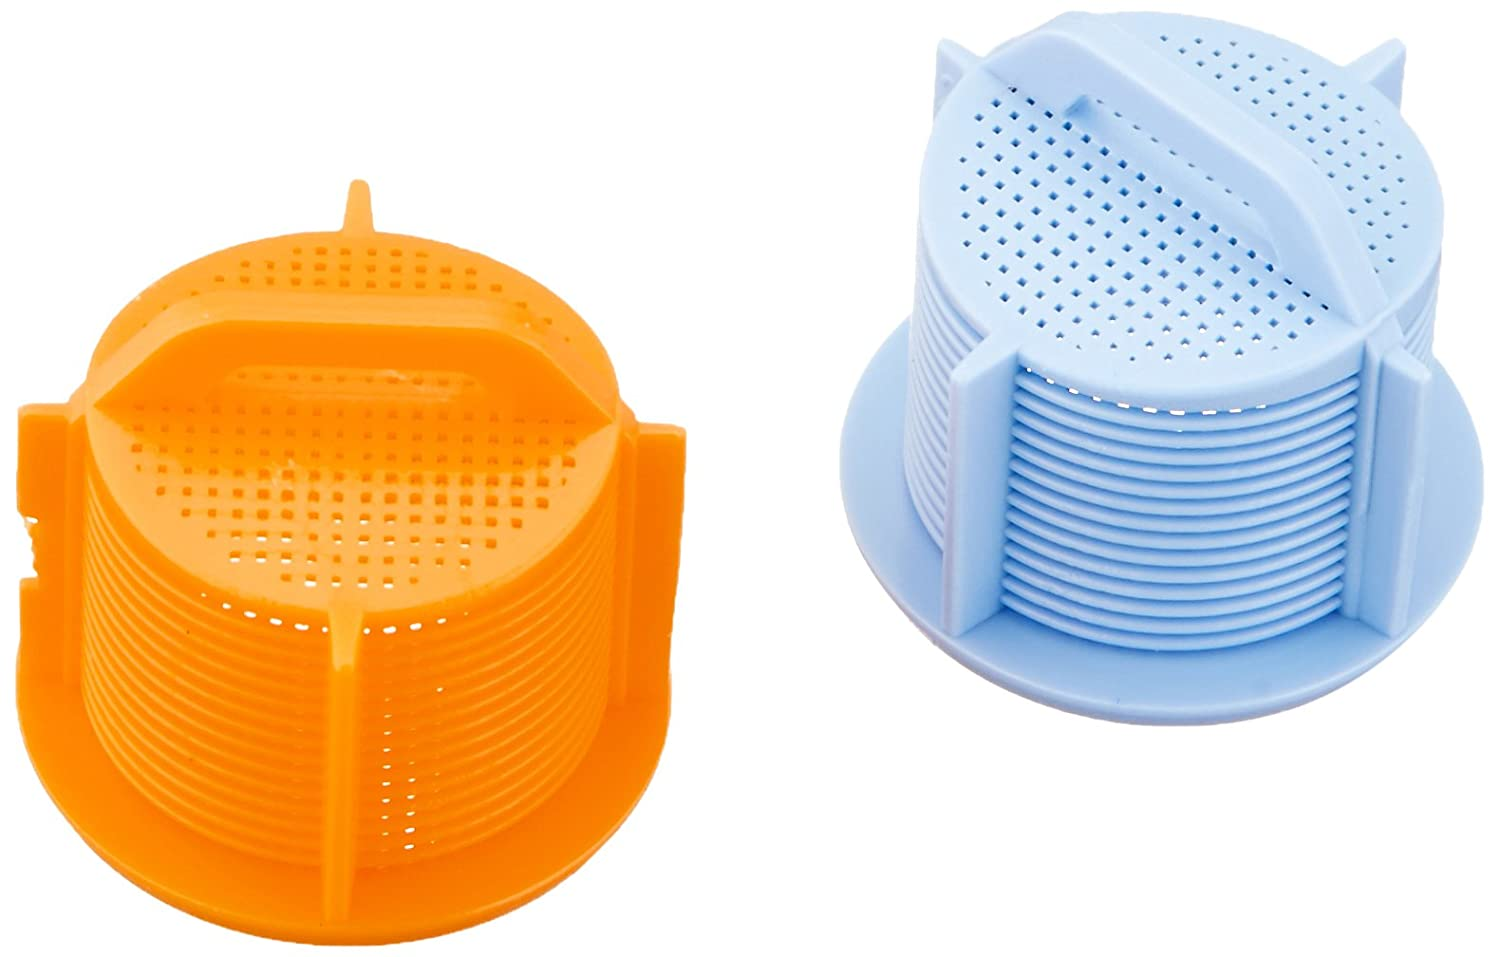 LG AGM73269501 Inlet Filters (2-Pack)